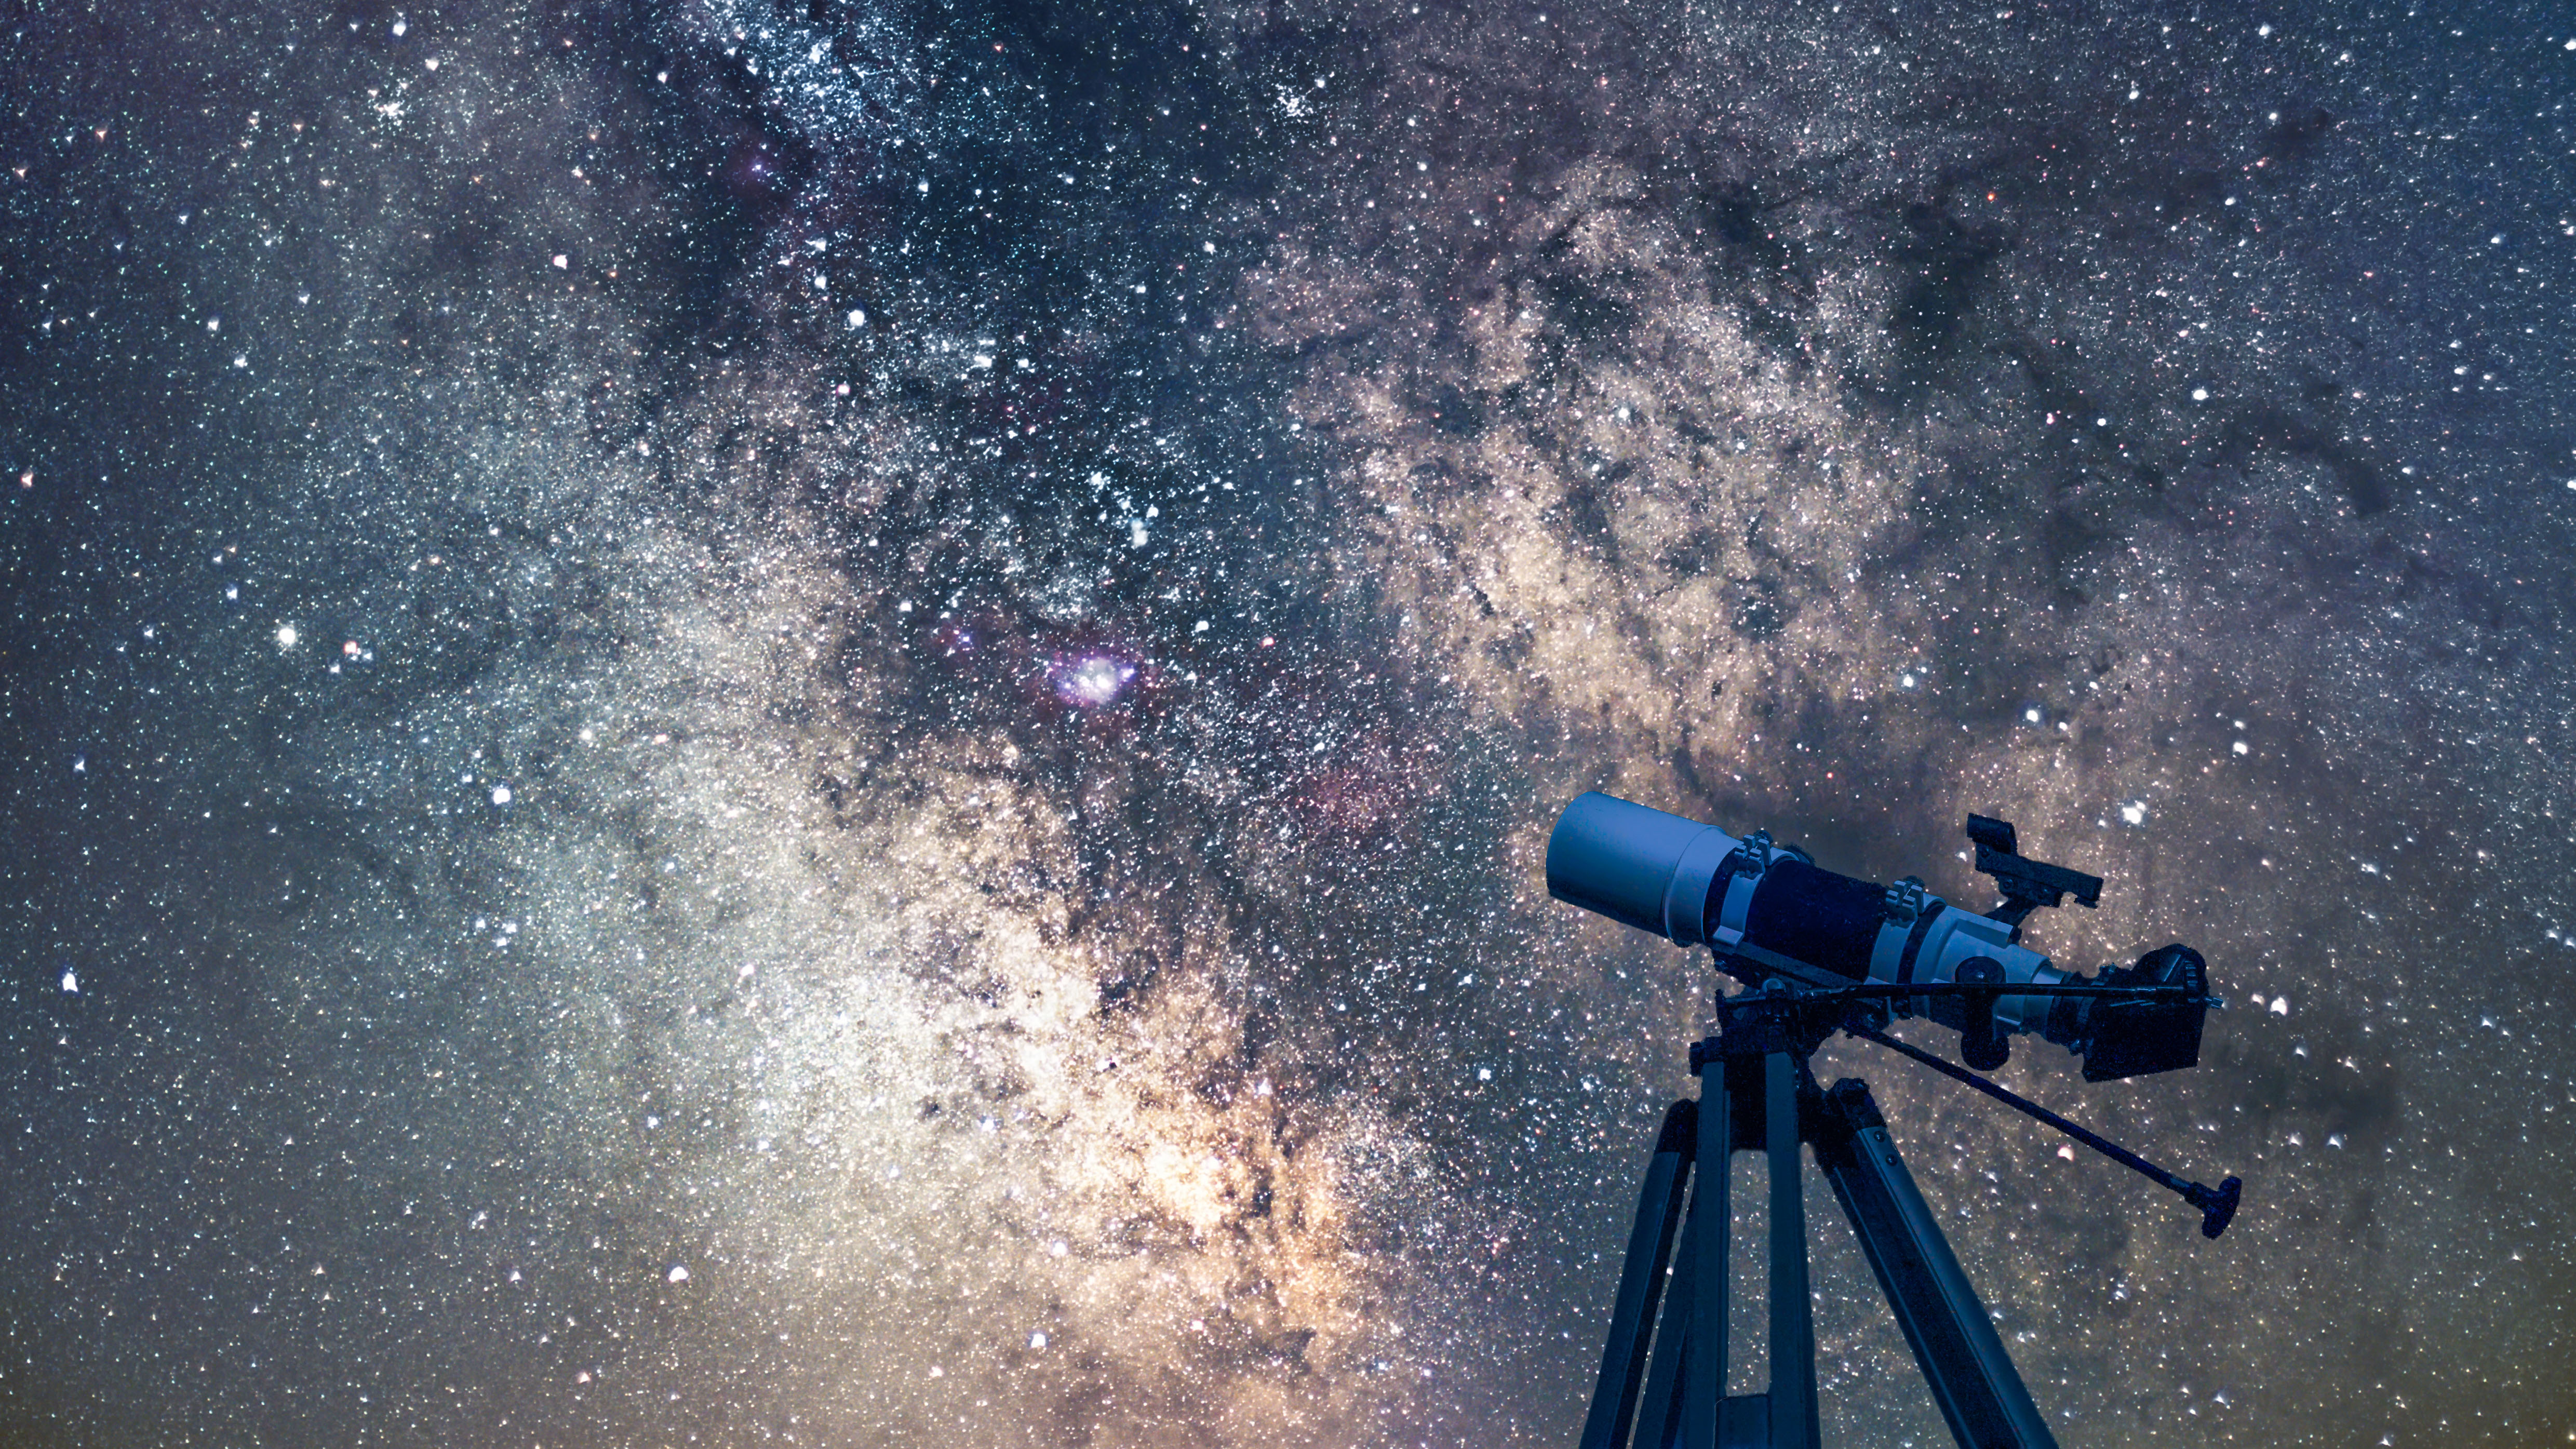 The best telescopes for astrophotography in 2019 | Digital